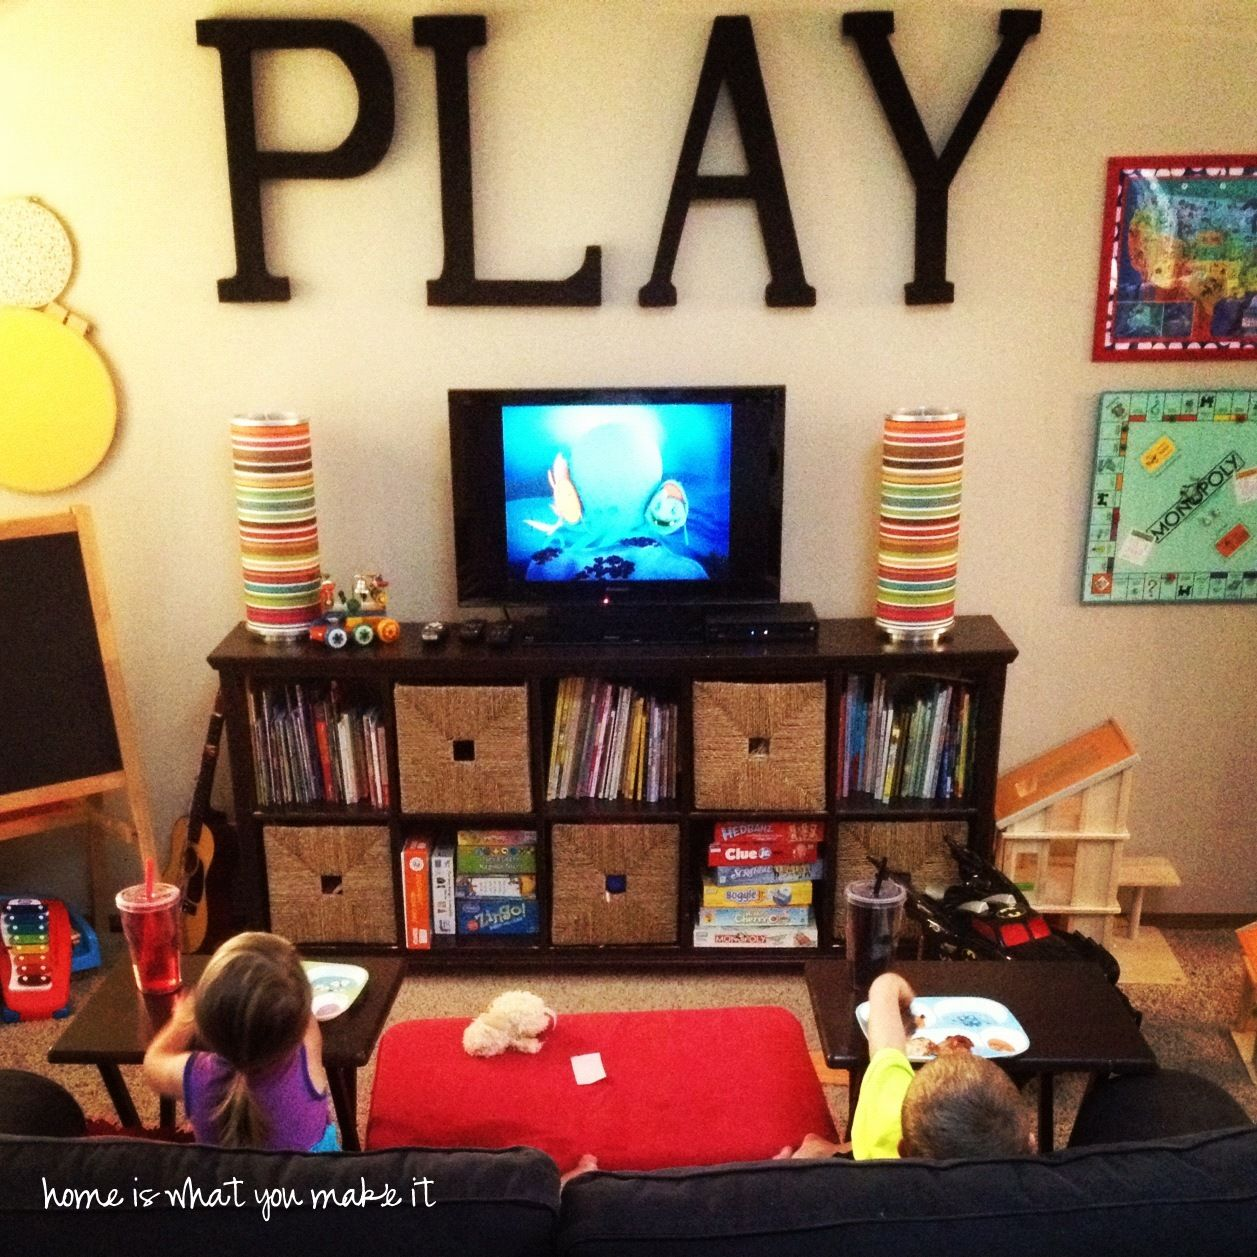 So yeah my house toy rooms playroom game room - Small video game room ideas ...